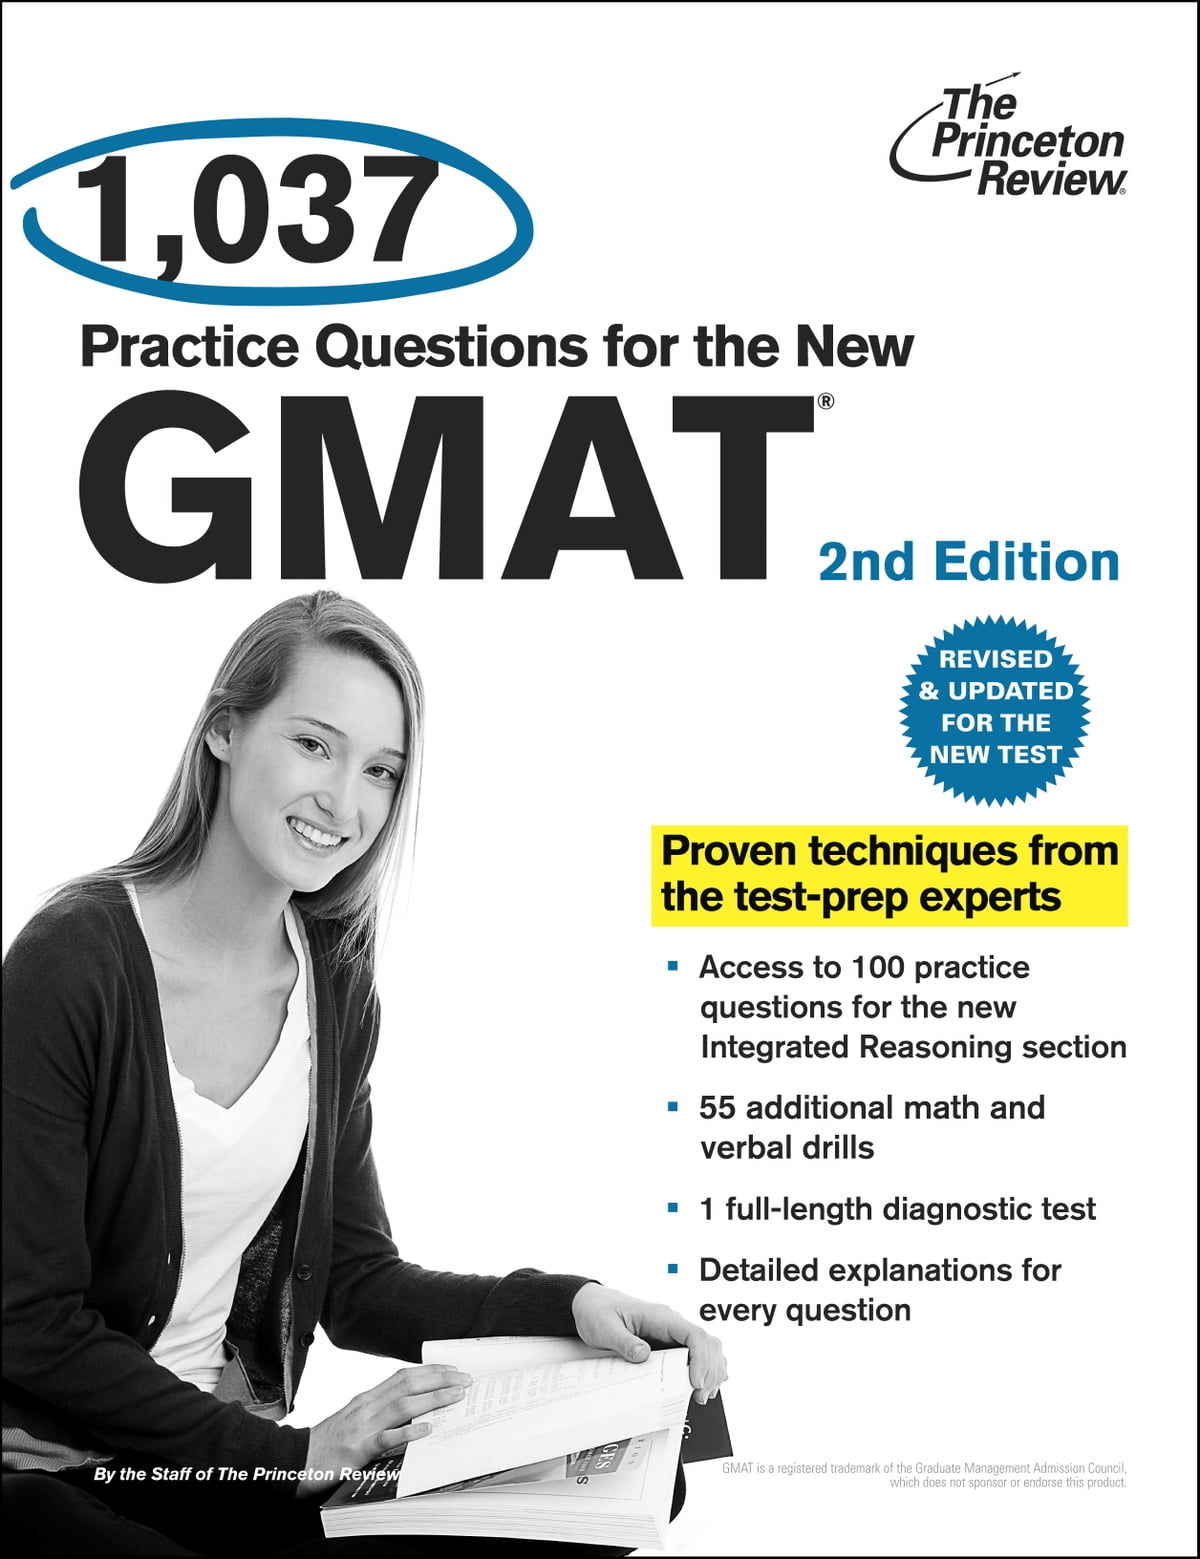 1,037 Practice Questions for the New GMAT, 2nd Edition eBook by Princeton  Review - 9780307944672 | Rakuten Kobo